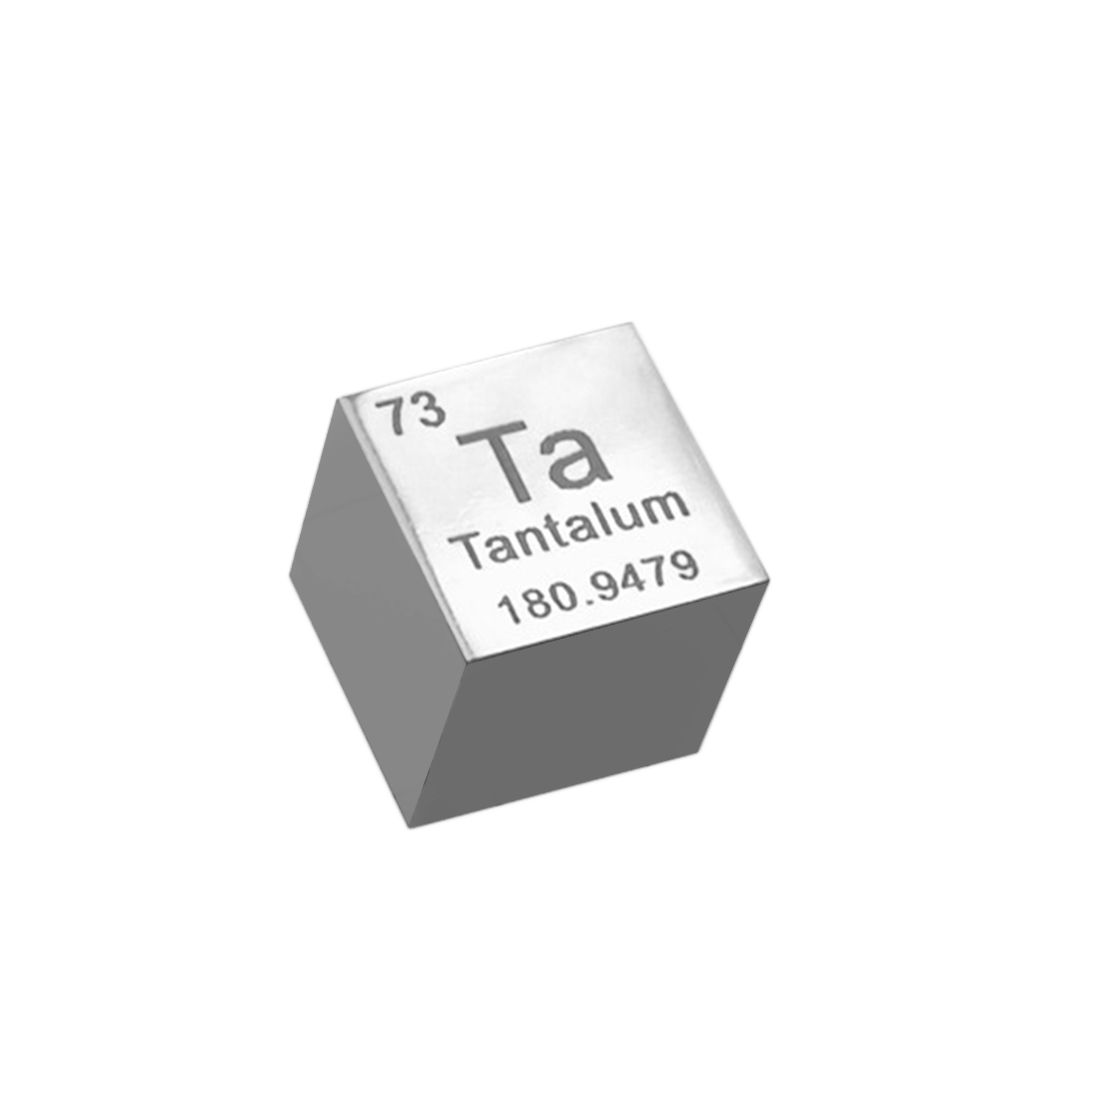 10mm Mirror Polish Tantalum Cube Periodic Table Of Elements Cube(Ta≥99.9%) Hand Made Science Educational DIY Crafts New image